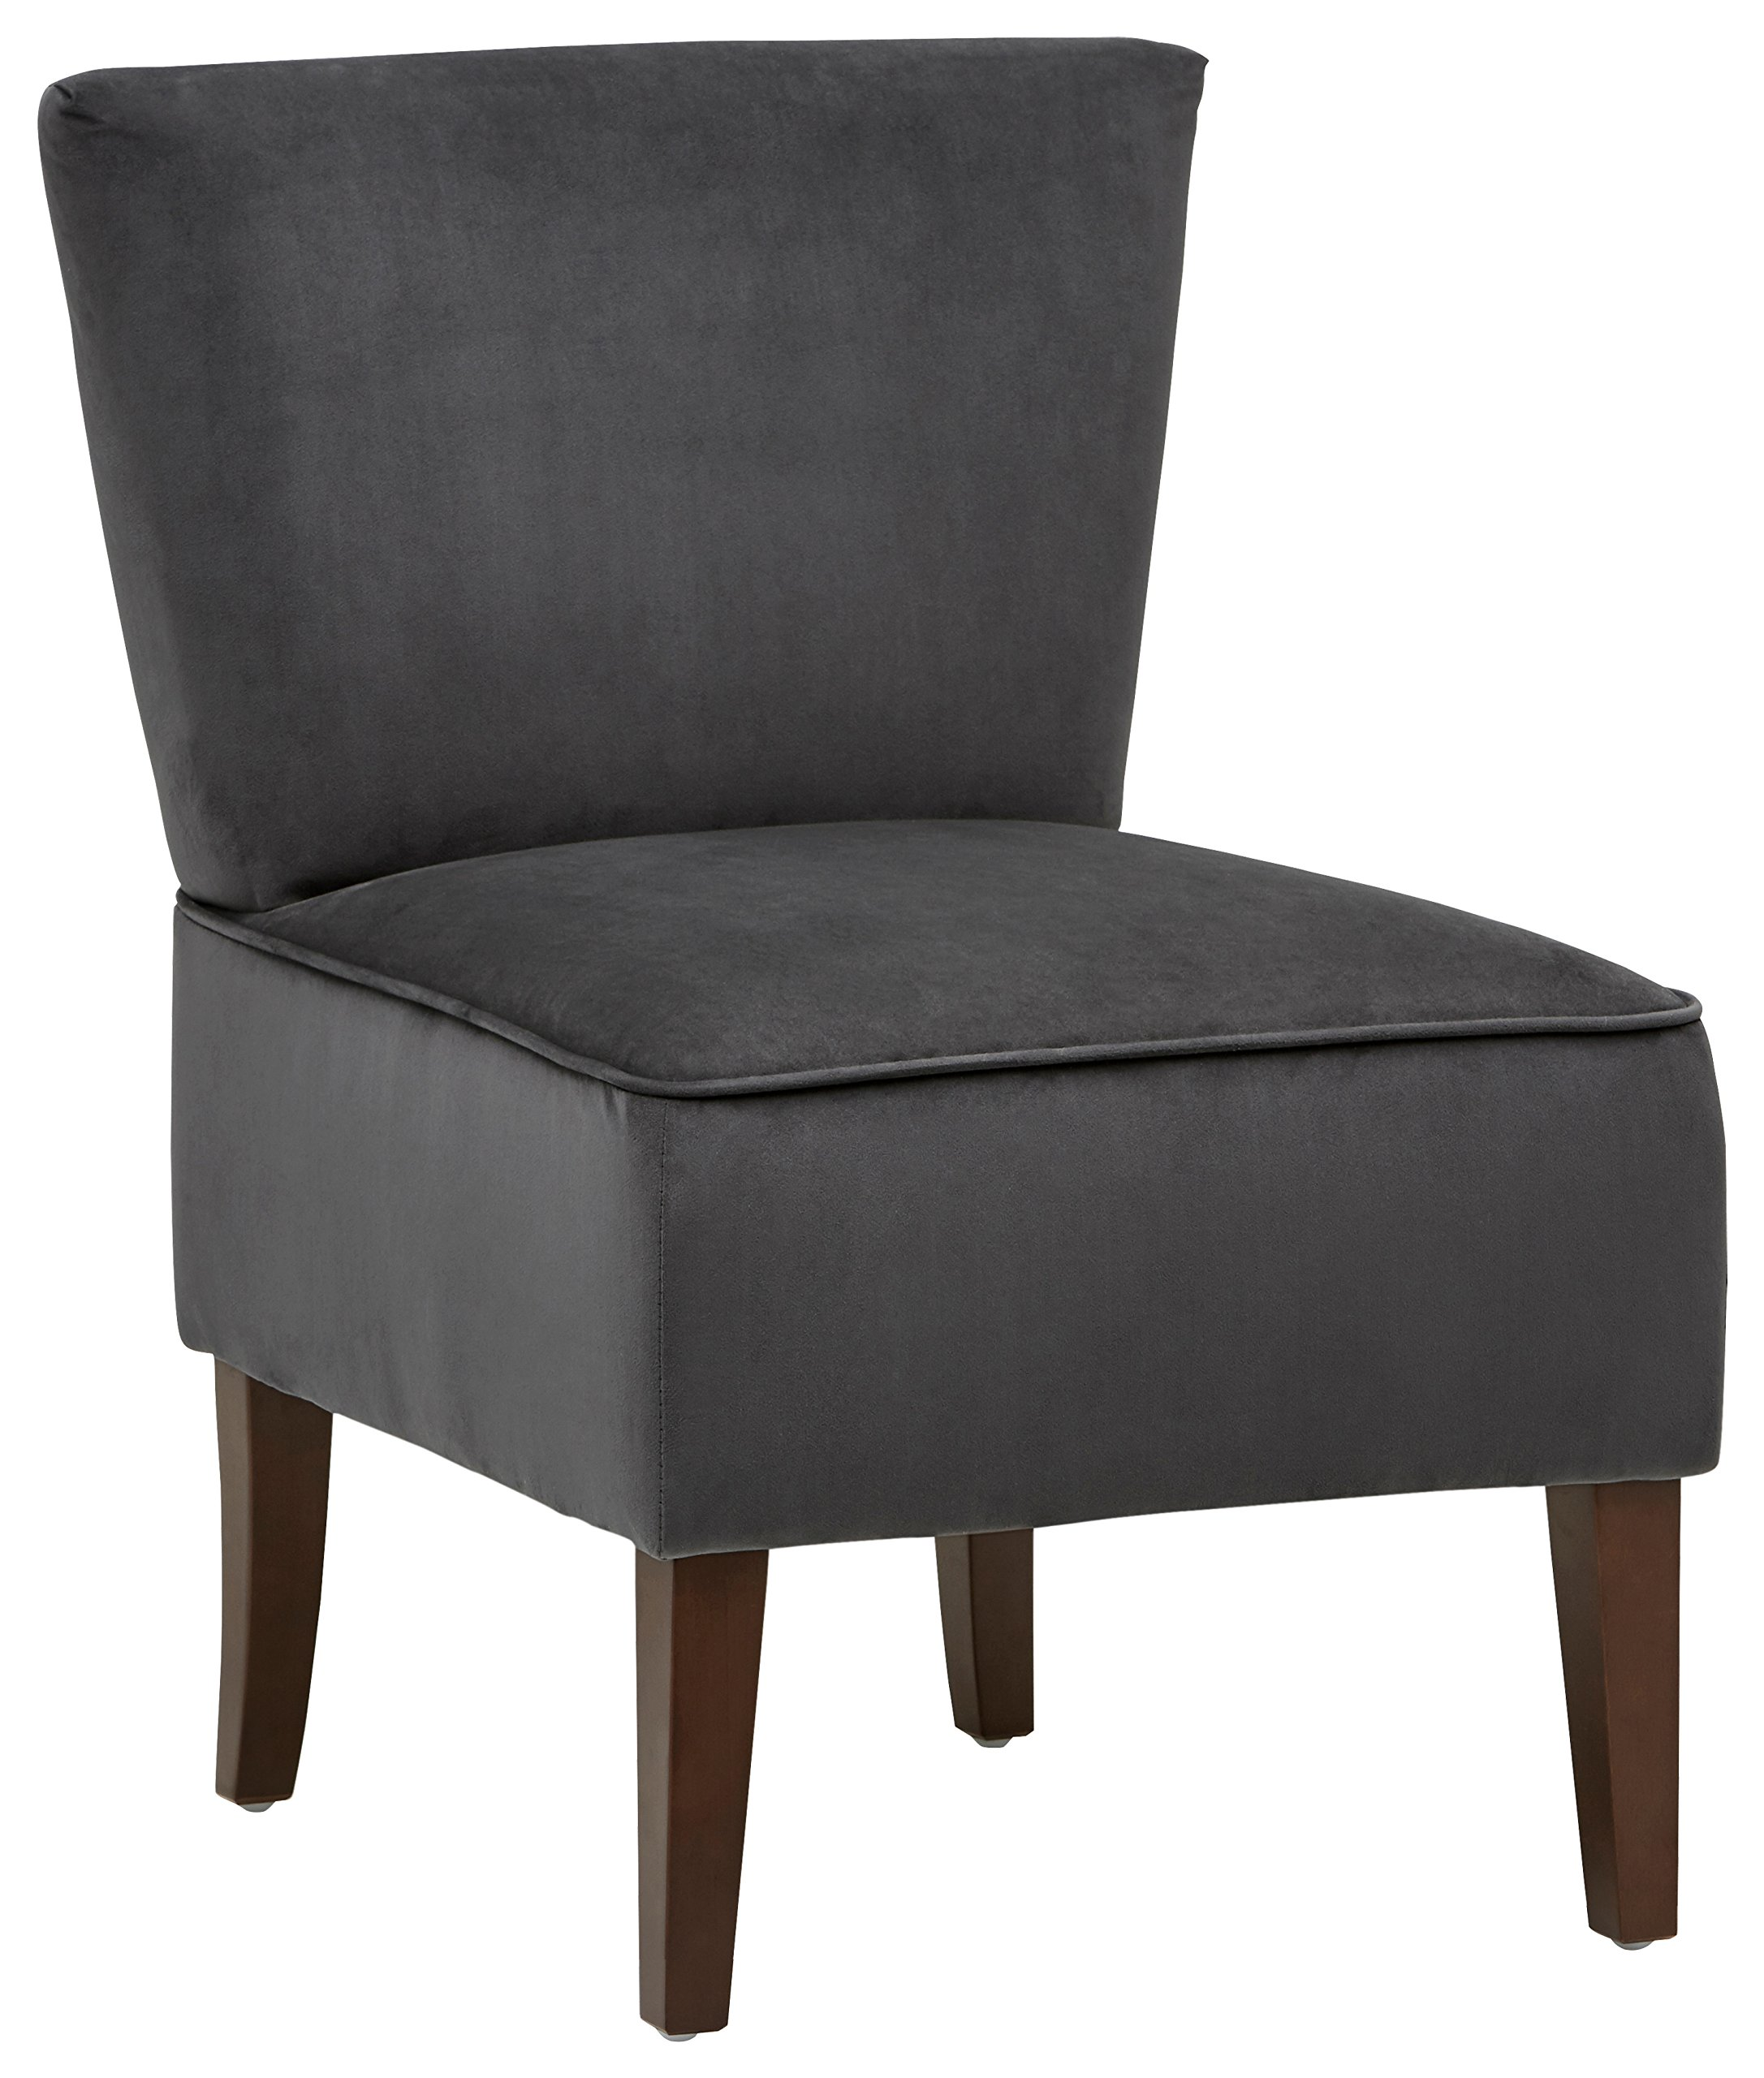 "Rivet Ashworth Armless Velvet Accent Chair, Steel Grey - This modern yet classic chair can blend easily with your existing styles. The angular and armless design is compact and can fit in a corner of a living room or bedroom. 21.6 ''W x 27.2""D x 32.3''H Sturdy legs made of solid beech wood with espresso-color finish - living-room-furniture, living-room, accent-chairs - 8158mQ5YDuL -"